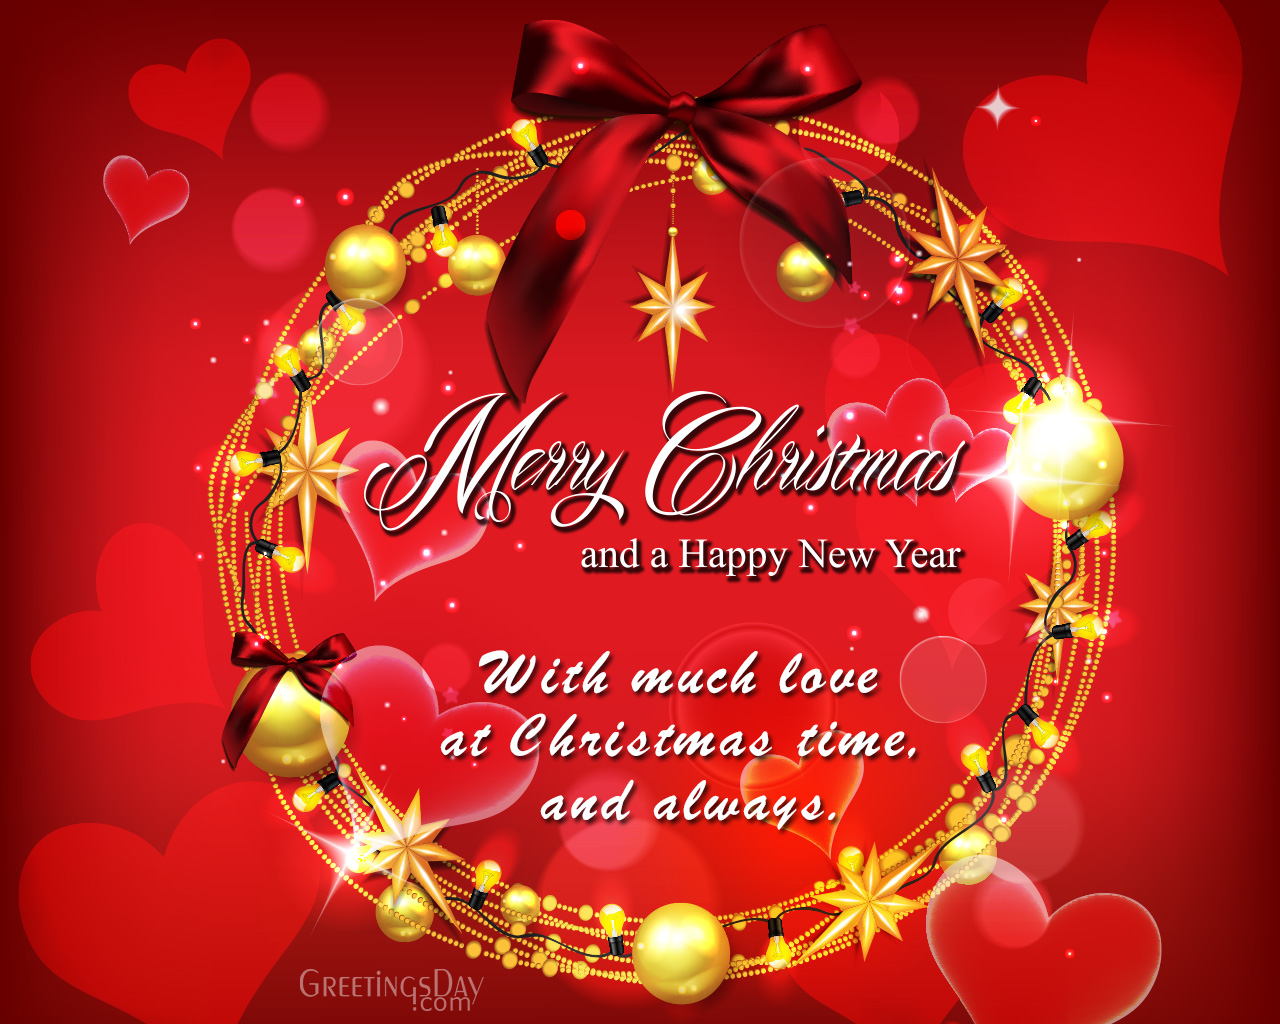 20 Christmas Greeting Cards For Boyfriend Girlfriend Husband Or Wife Merry Christmas